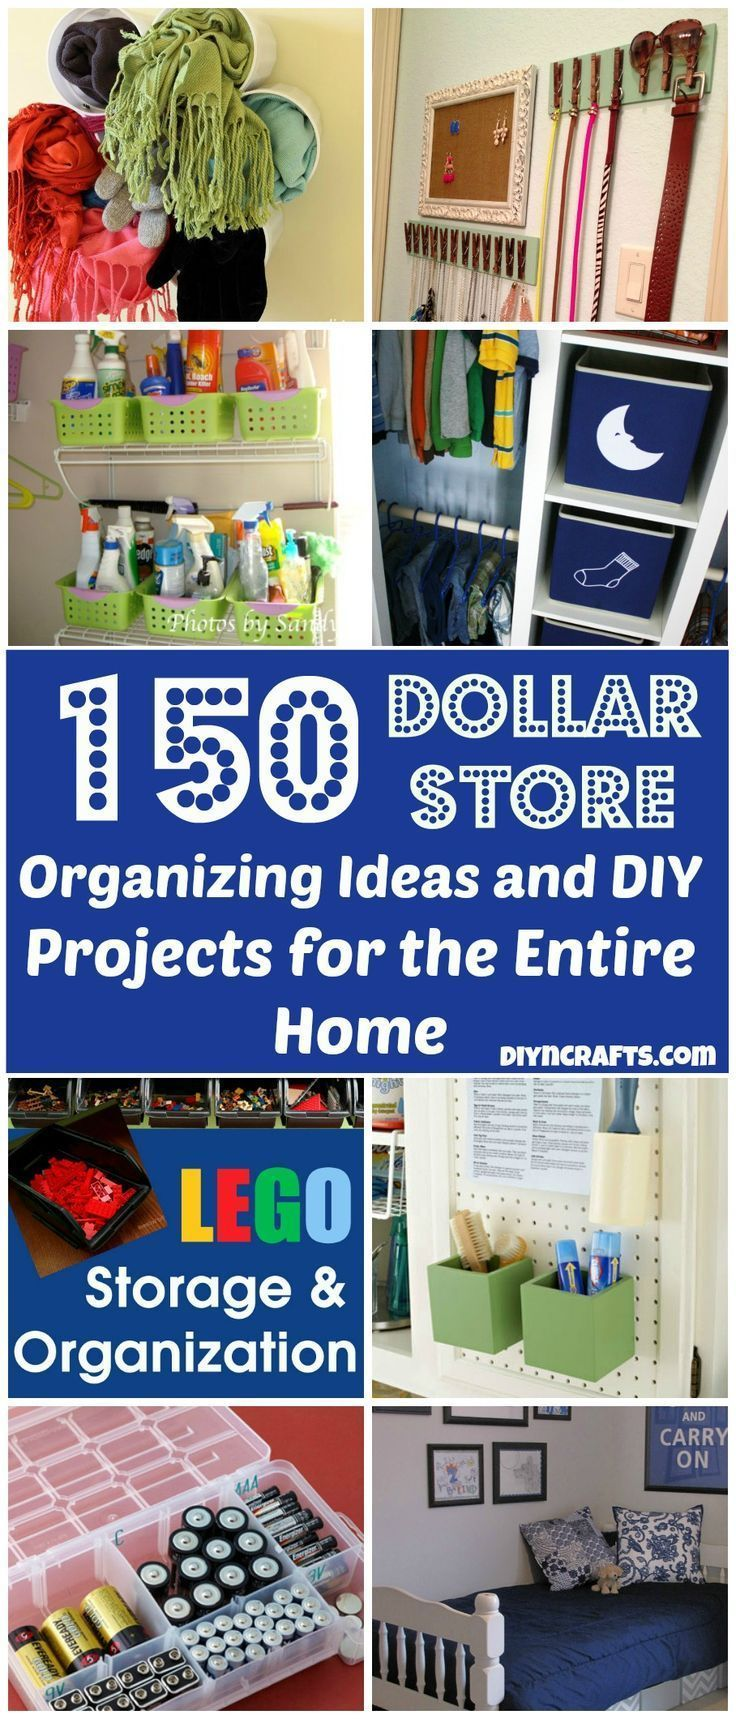 150 Dollar Store Organizing Ideas and Projects for the Entire Home on dollar tree kitchen utensils, dollar tree decorating, lowe's kitchen ideas, dollar tree kitchen makeover, dollar tree valentine's day, dollar tree budget, dollar tree bedroom, dollar tree kitchen supplies, dollar tree baby, dollar tree diy, dollar tree storage, dollar tree design, dollar tree kitchen backsplash, dollar tree teacher stuff, dollar tree thanksgiving, dollar tree general, ikea kitchen ideas, dollar tree accessories, dollar tree organization, dollar tree construction,